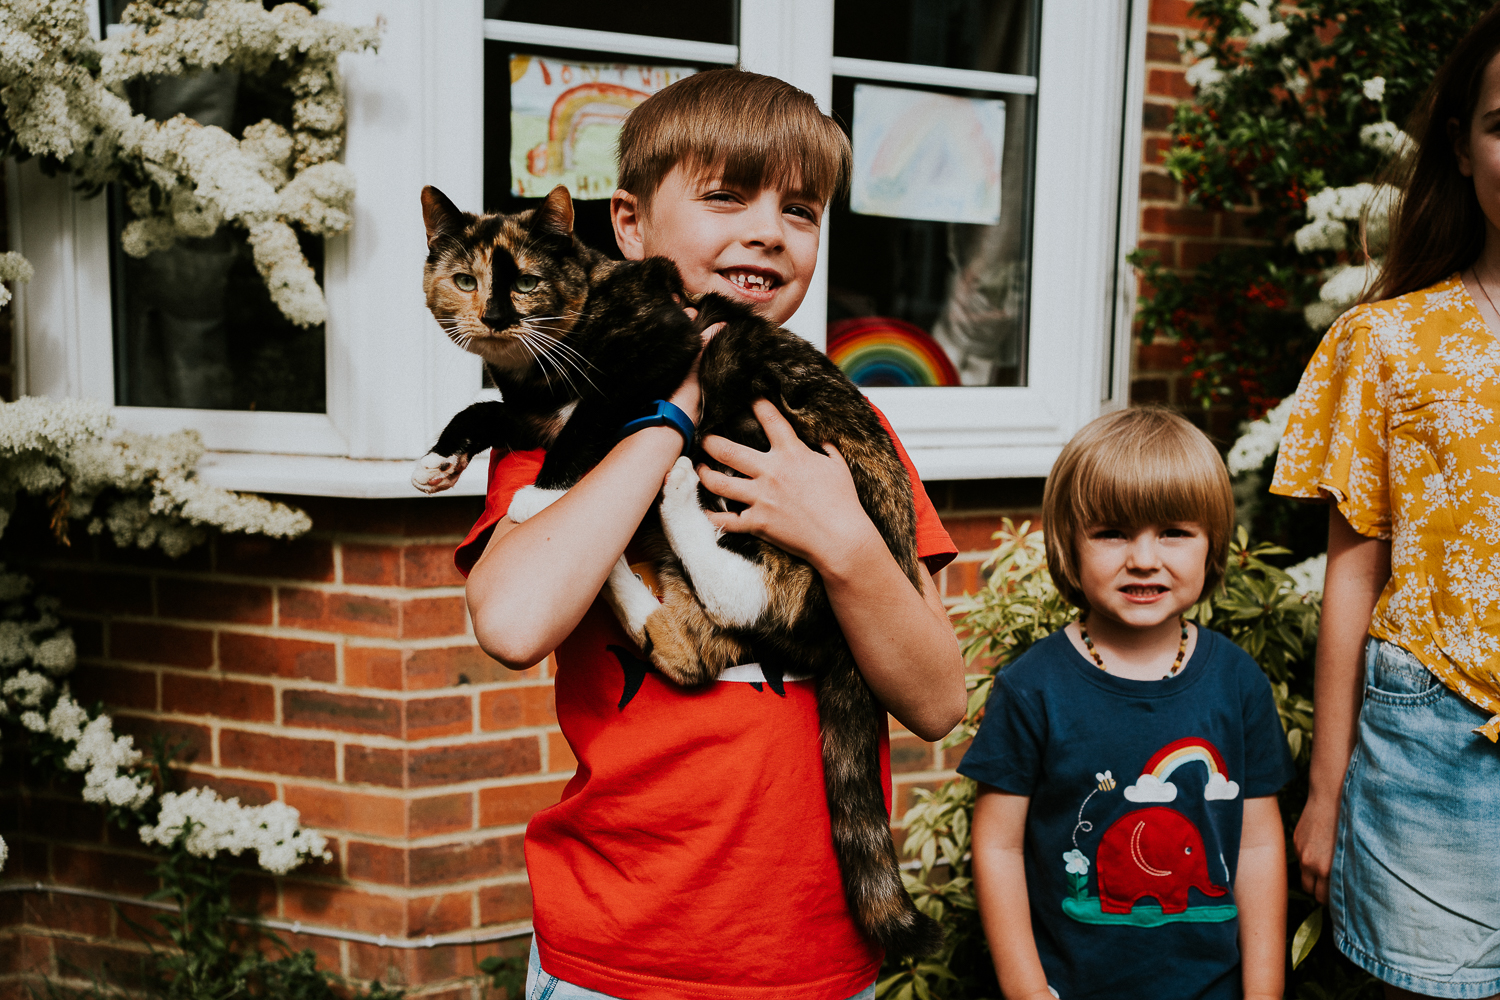 London family photography 2020 doorstep shoot portrait in kent boy with cat